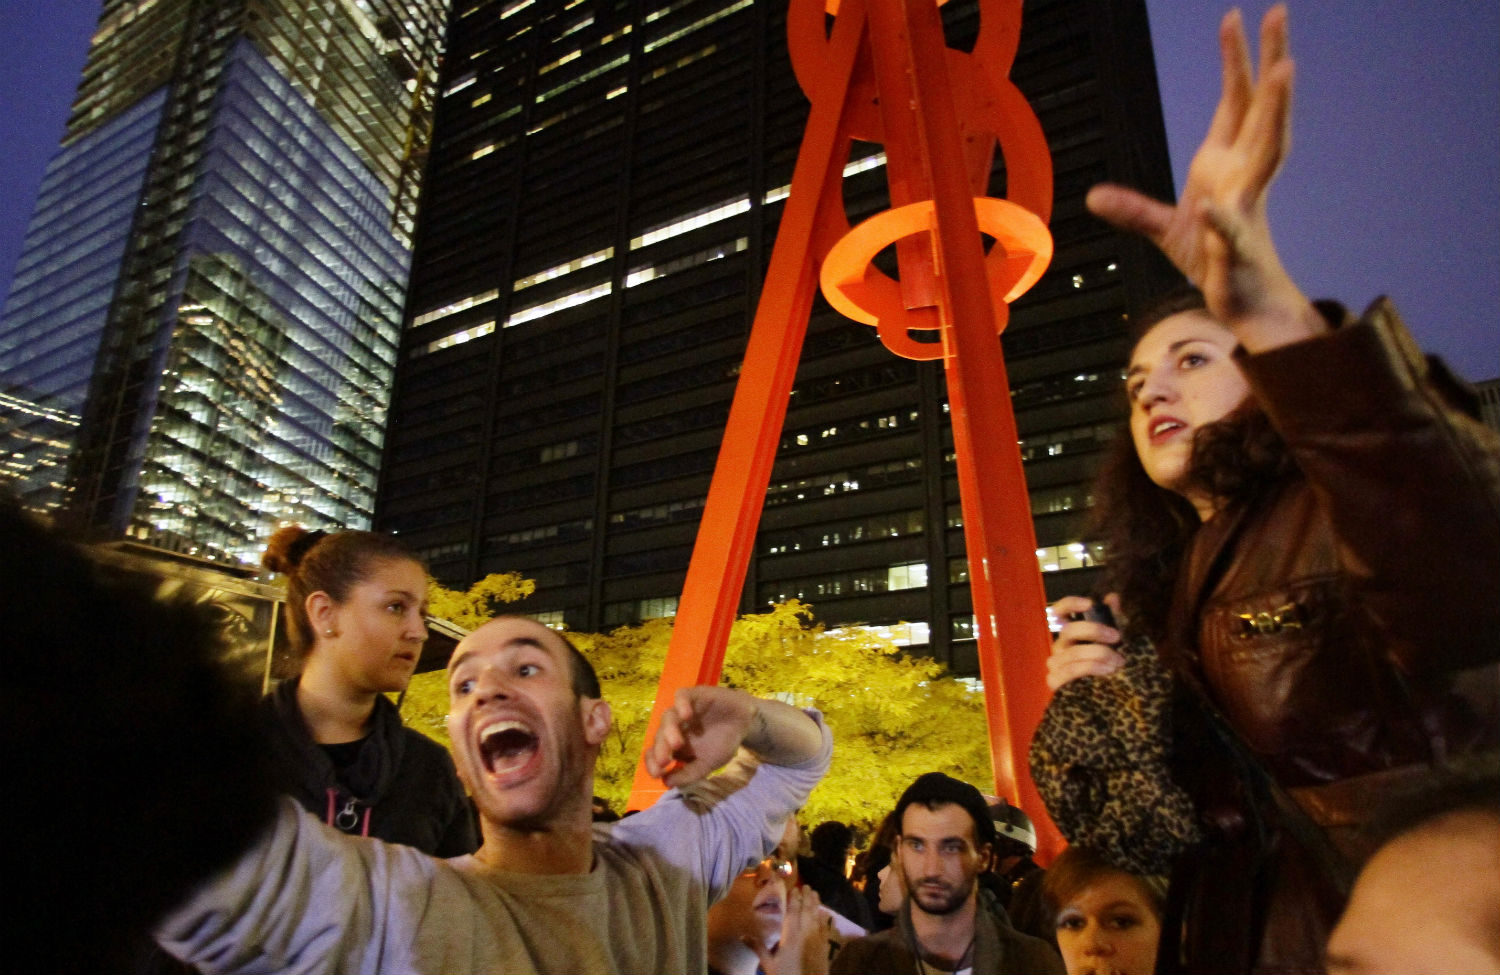 Occupy-Wall-Street-protesters-Eric-Linkser-and-Cecily-McMillan-take-turns-shouting-information-to-protesters